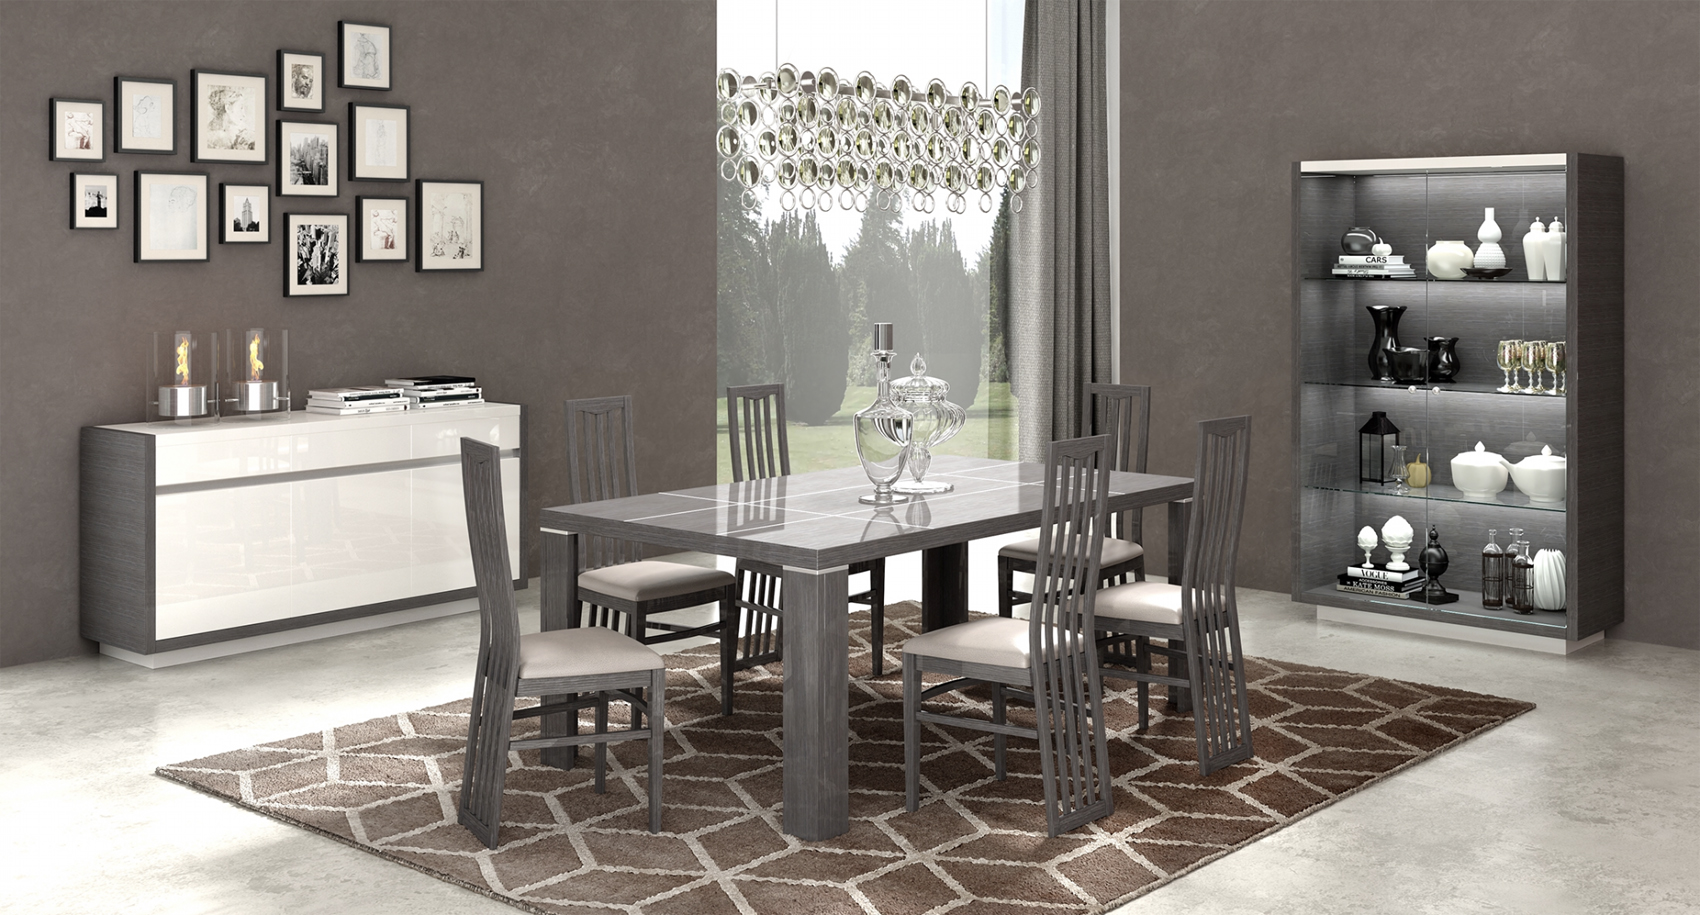 Mangano Dining Modern Room Sets, Modern Dining Room Sets With Buffet